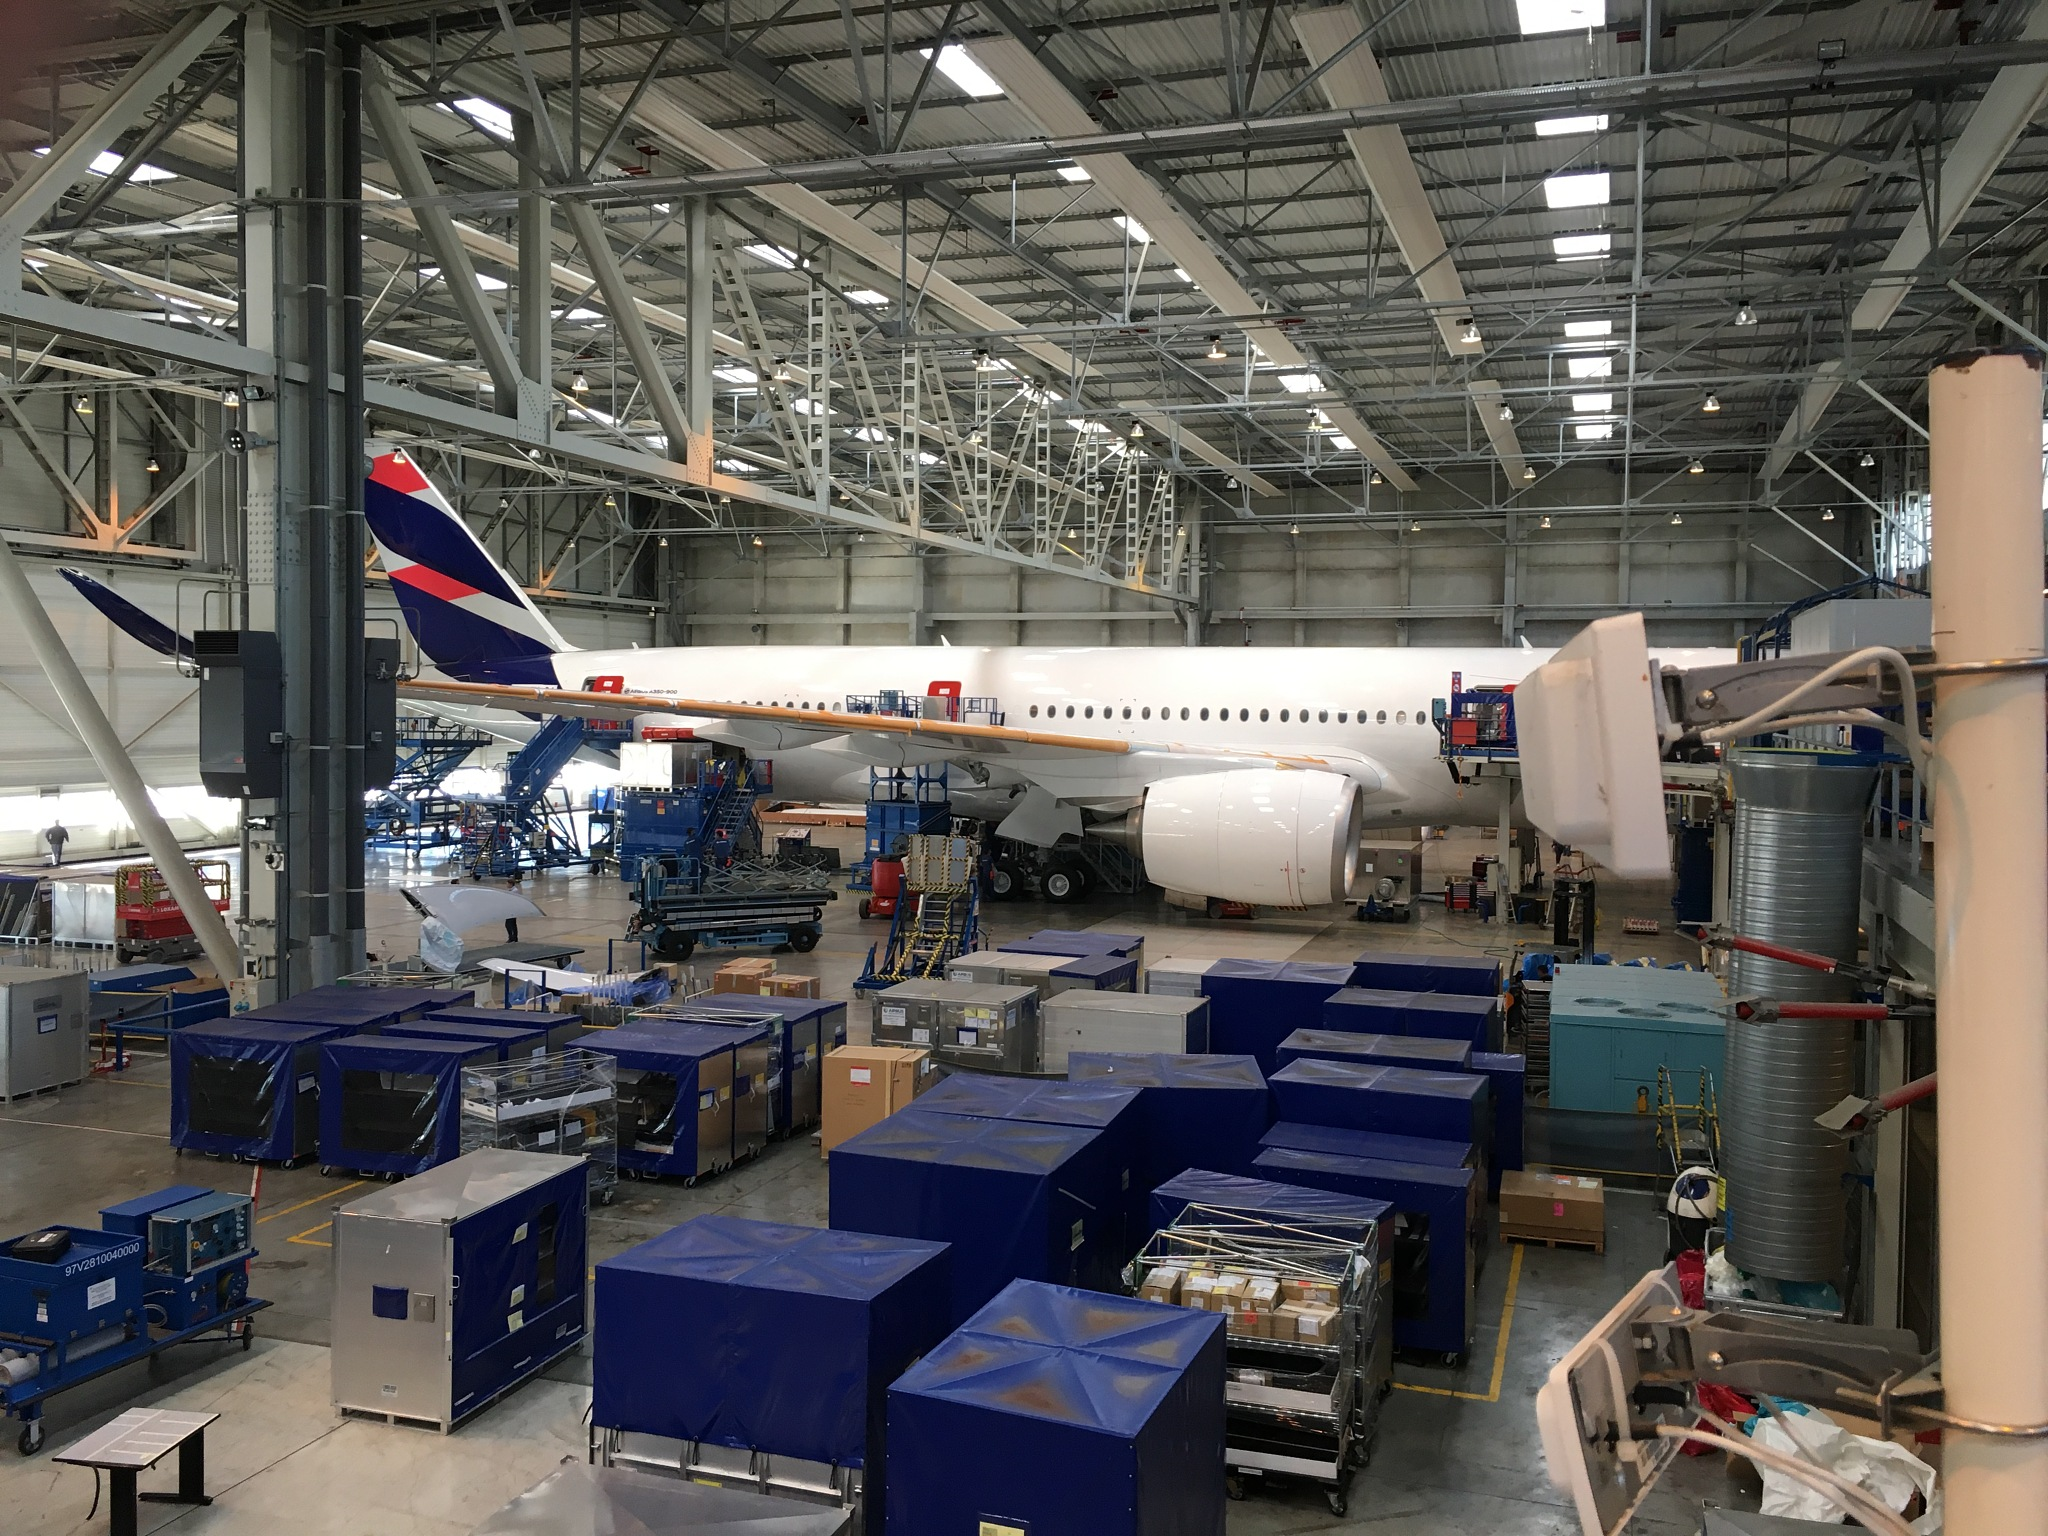 LATAM Airlines Newest A350 by ronmac777